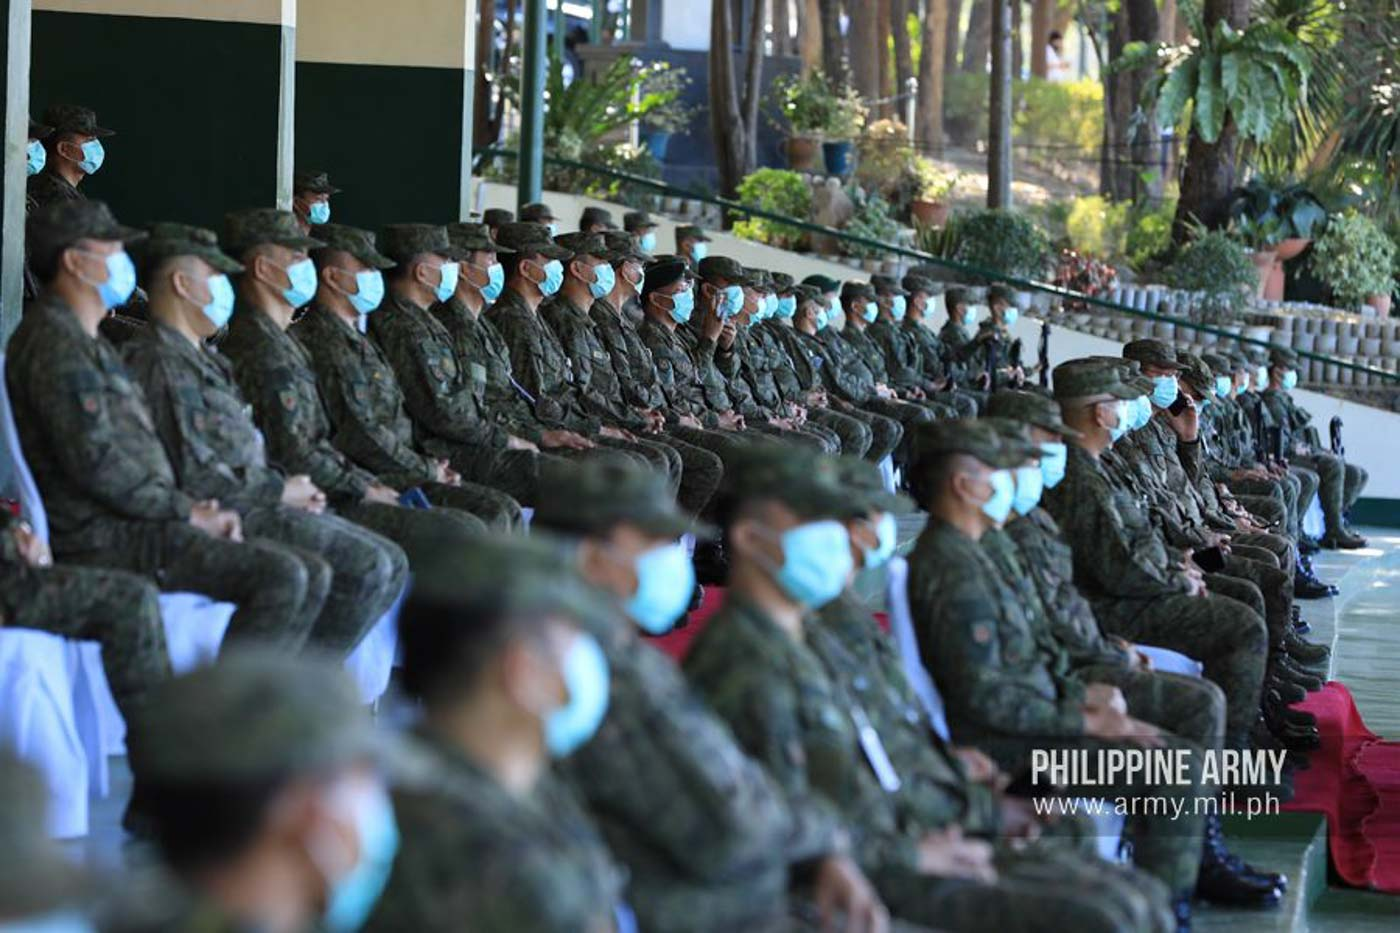 ARMY TROOPS. The Philippine Army marks its 123rd anniversary on March 23, 2020, amid an outbreak of the novel coronavirus. Photo from the Philippine Army